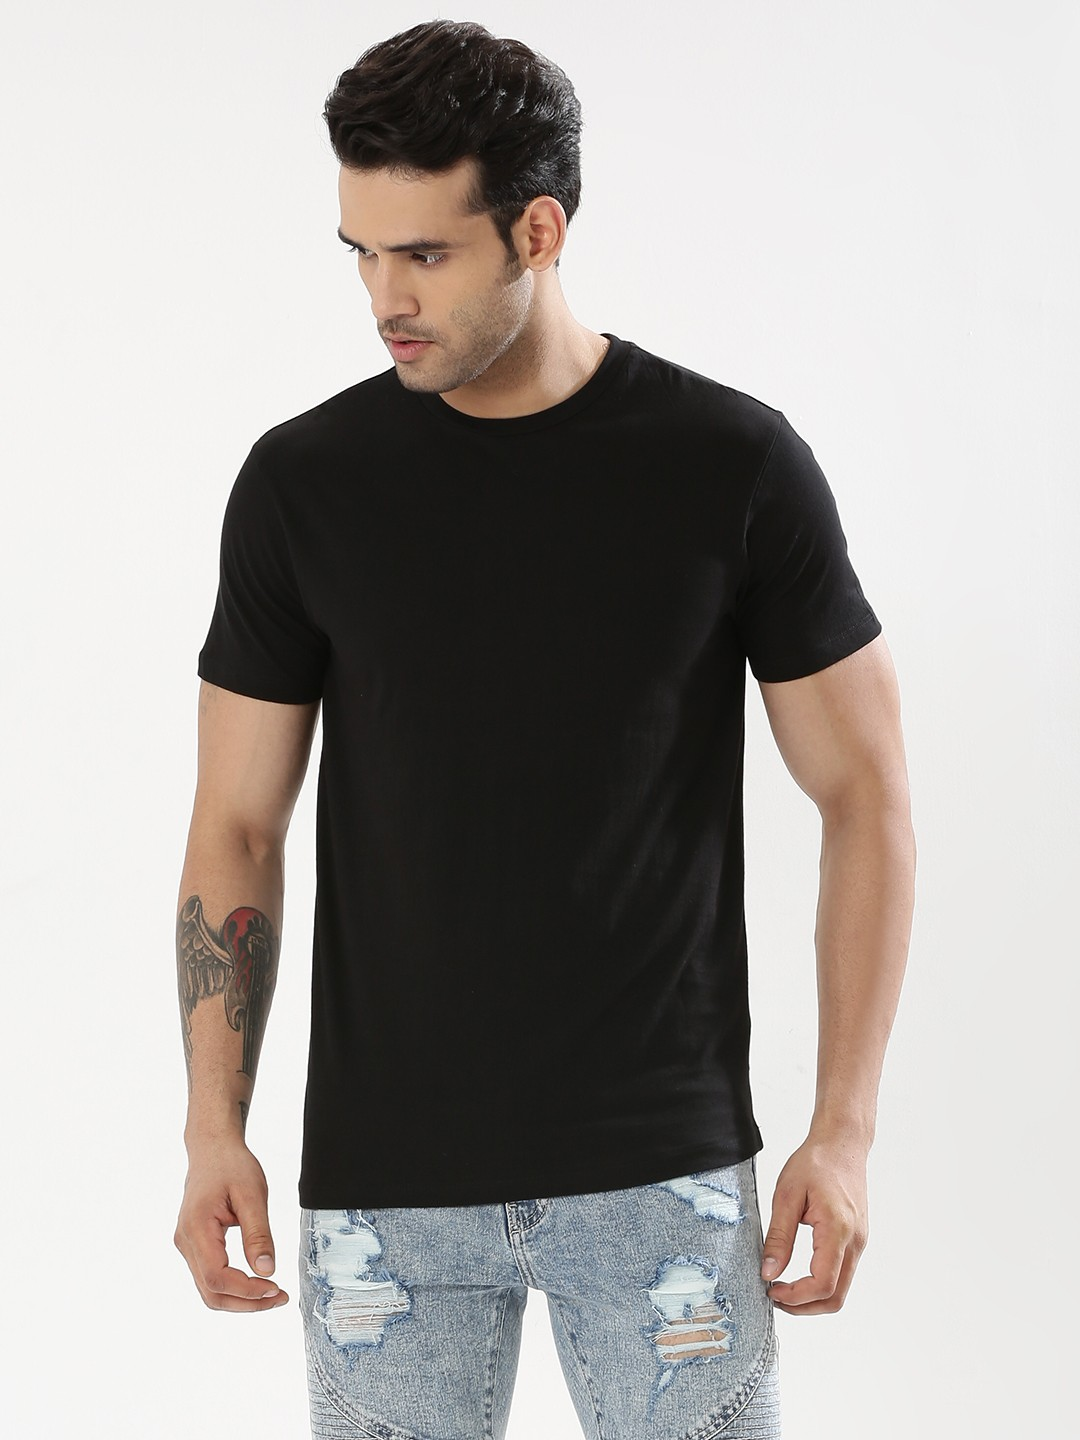 Buy KOOVS Crew Neck T-Shirt For Men - Men's Black T-shirts Online ...